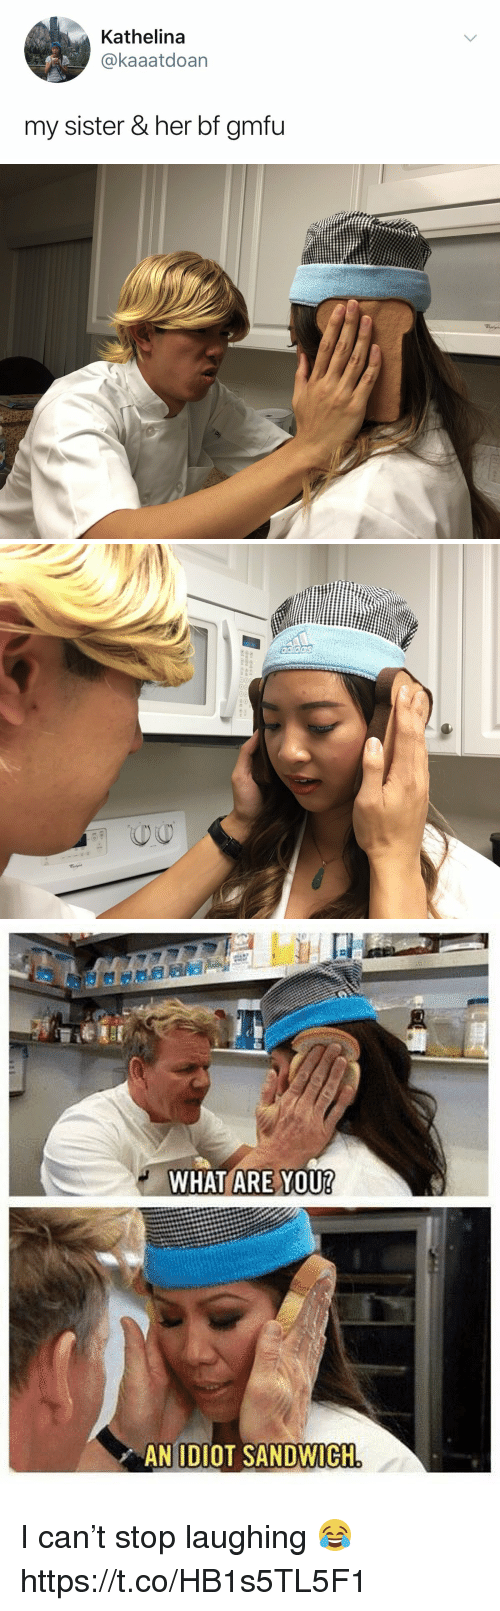 Idiot Sandwich: Kathelina  @kaaatdoan  my sister & her bf gmfu   WHAT ARE YOU  AN IDIOT SANDWICH I can't stop laughing 😂 https://t.co/HB1s5TL5F1